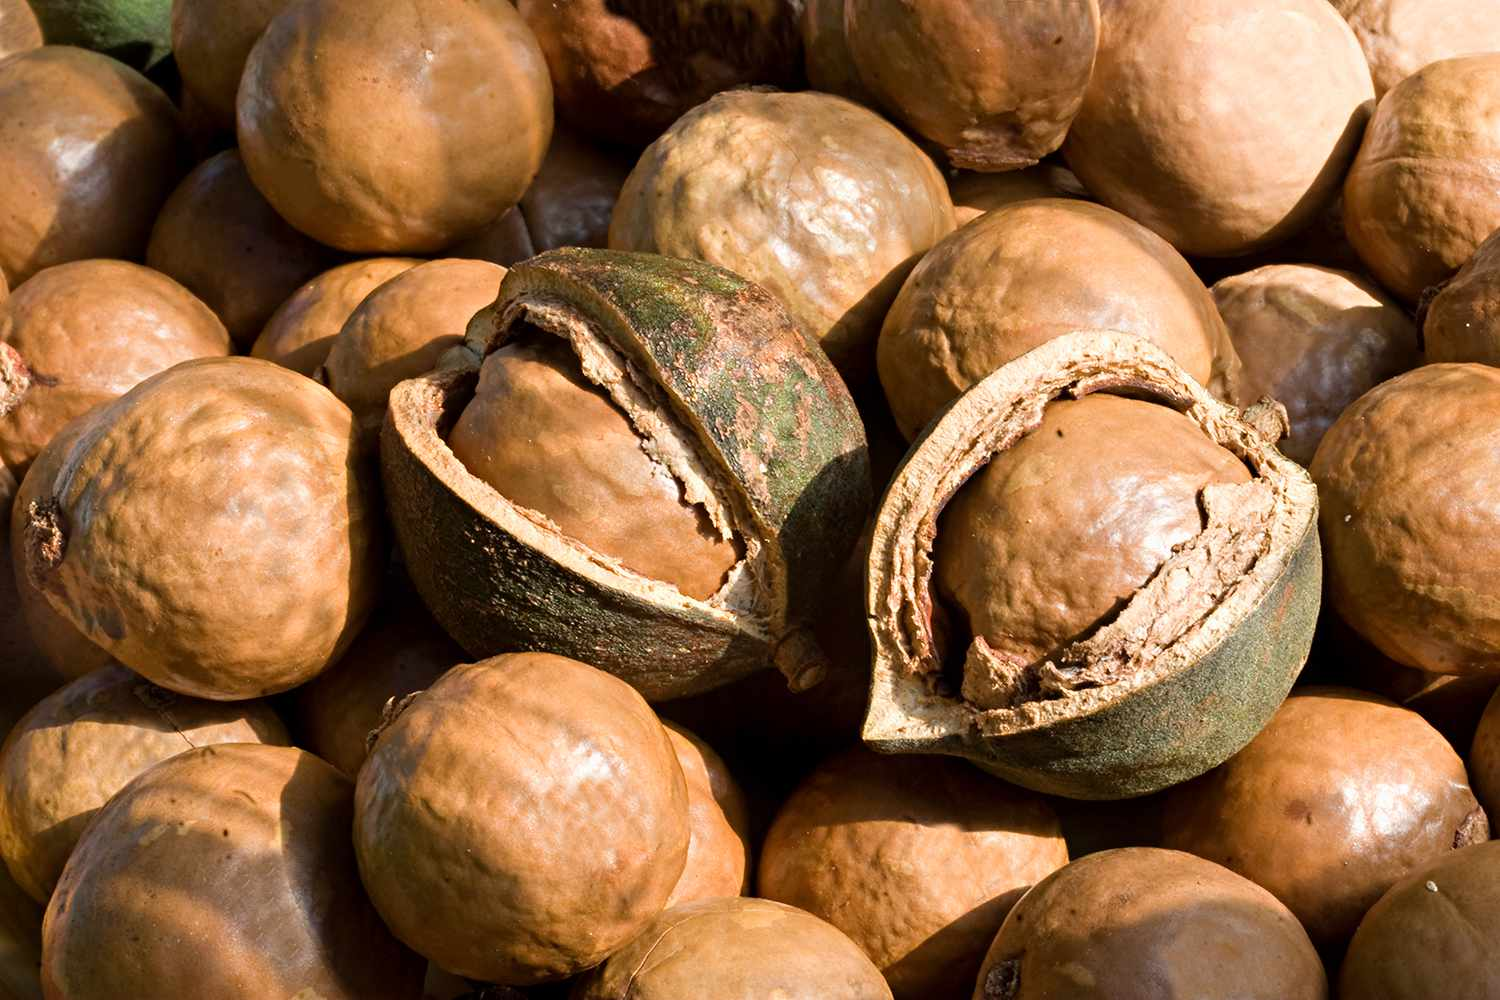 Macadamia nuts in dried outer shell, Louis Trichard, Limpopo